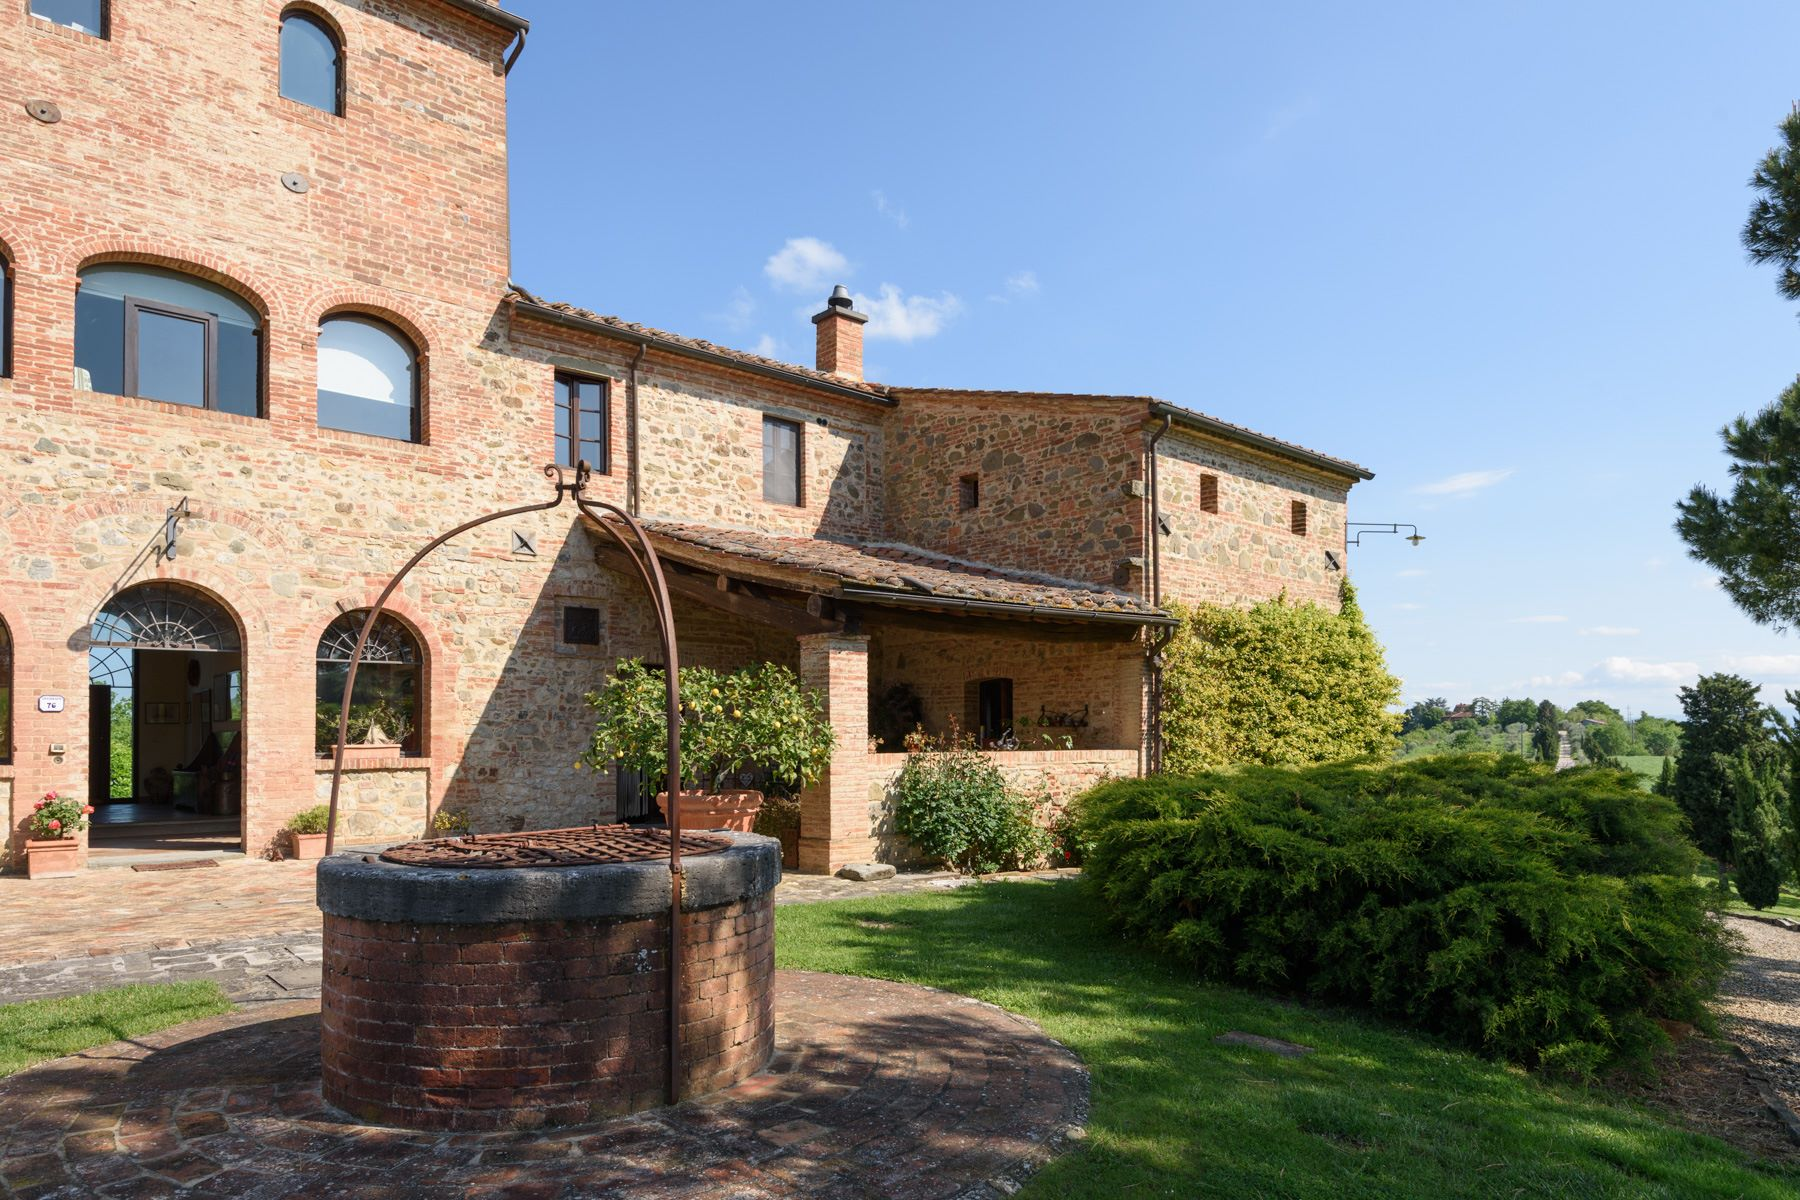 Additional photo for property listing at Tuscan countryhouse with 2,5 ha of vineyards Località Valcelle Torrita Di Siena, Siena 53049 Italien